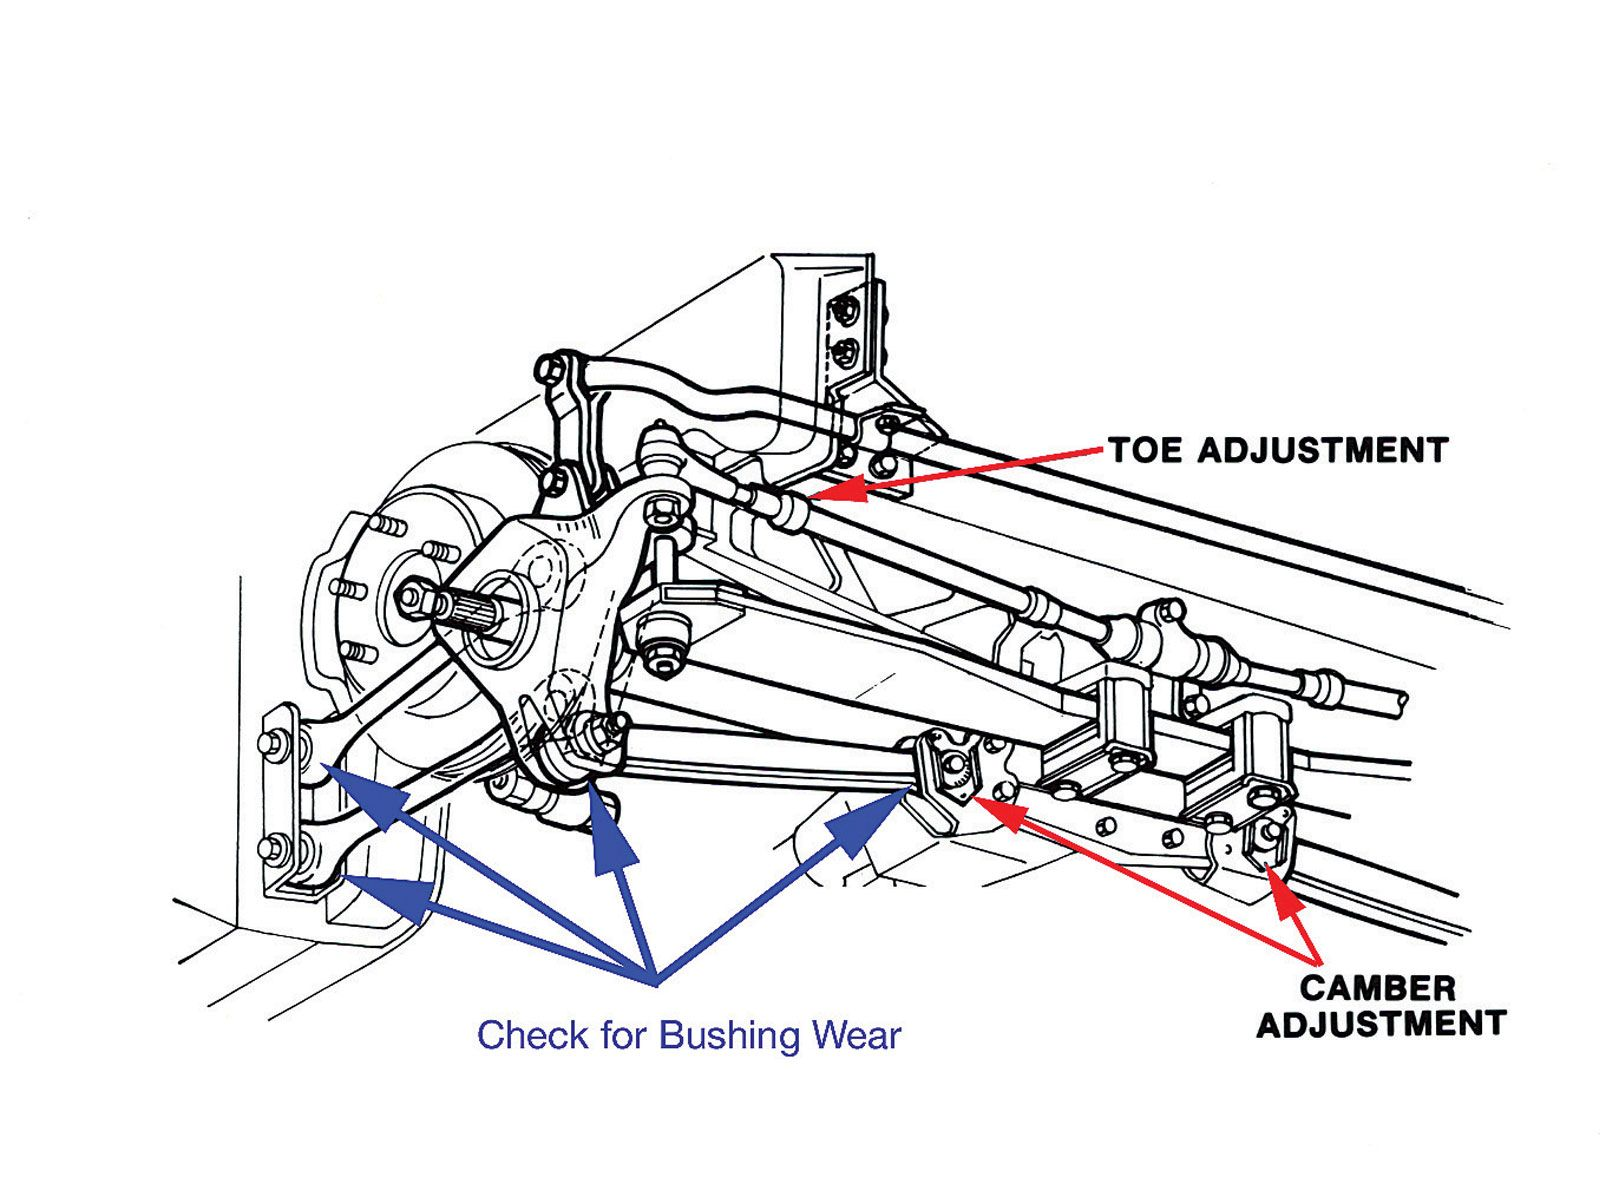 87 Corvette Chassis Wiring Diagram - Car Wiring Diagrams Explained •